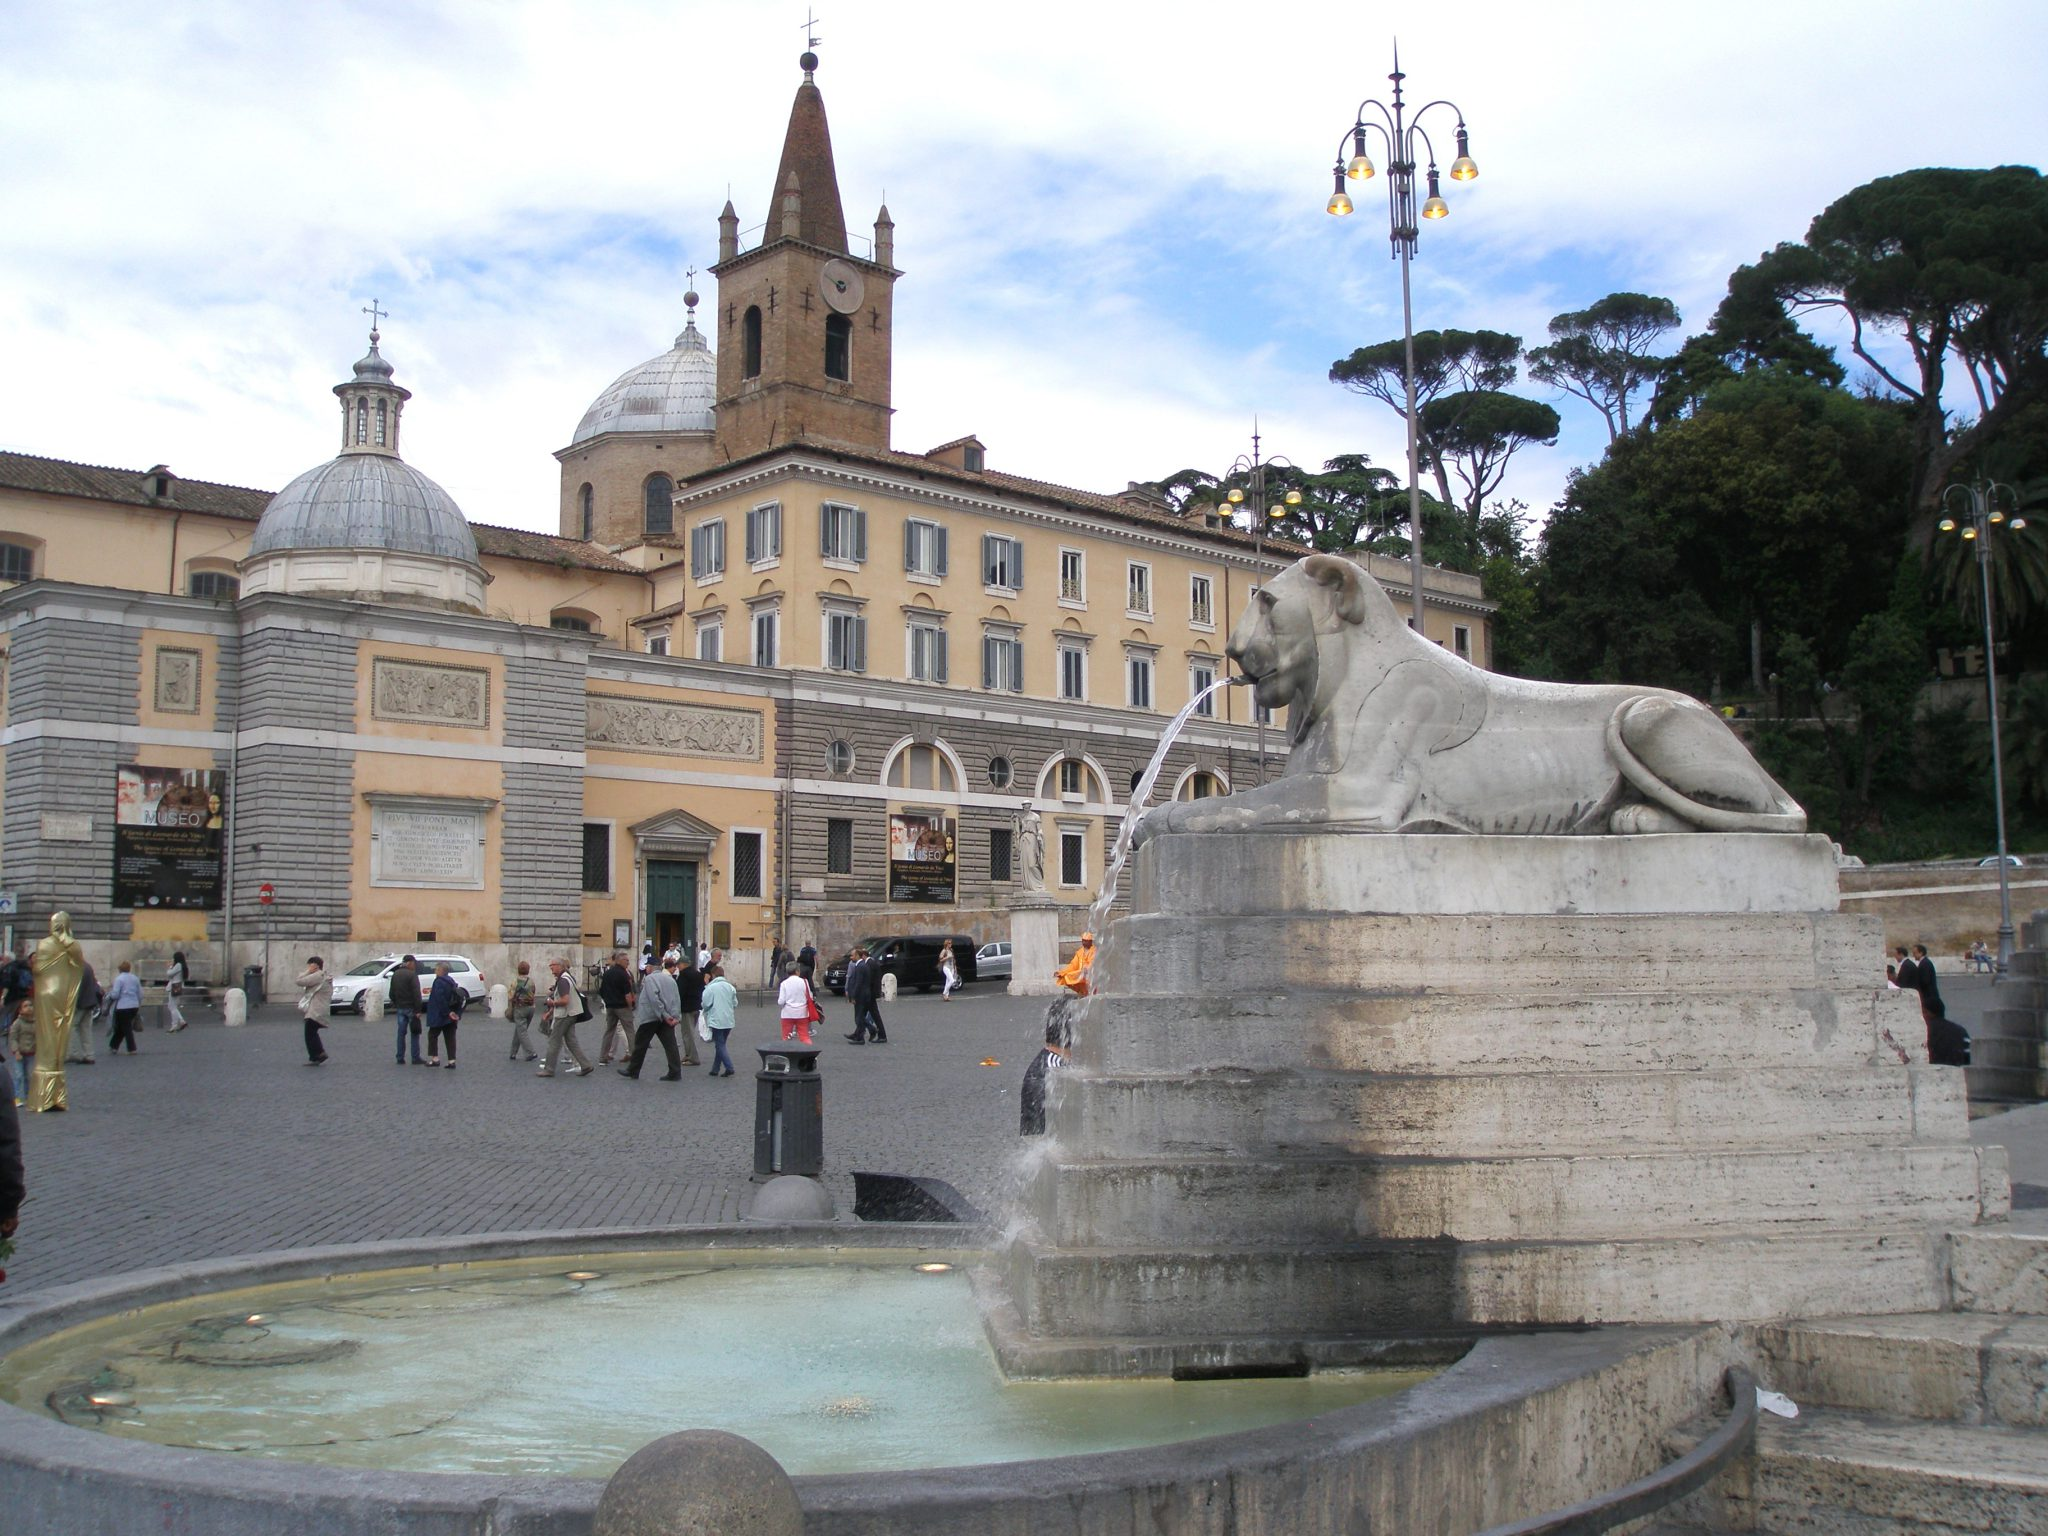 Piazza del Popolo. The Basilica of Santa Maria del Popolo is on the north side of the Piazza. Behind its Baroque facade, the main body of the church building erected in the late 1400s still stands.